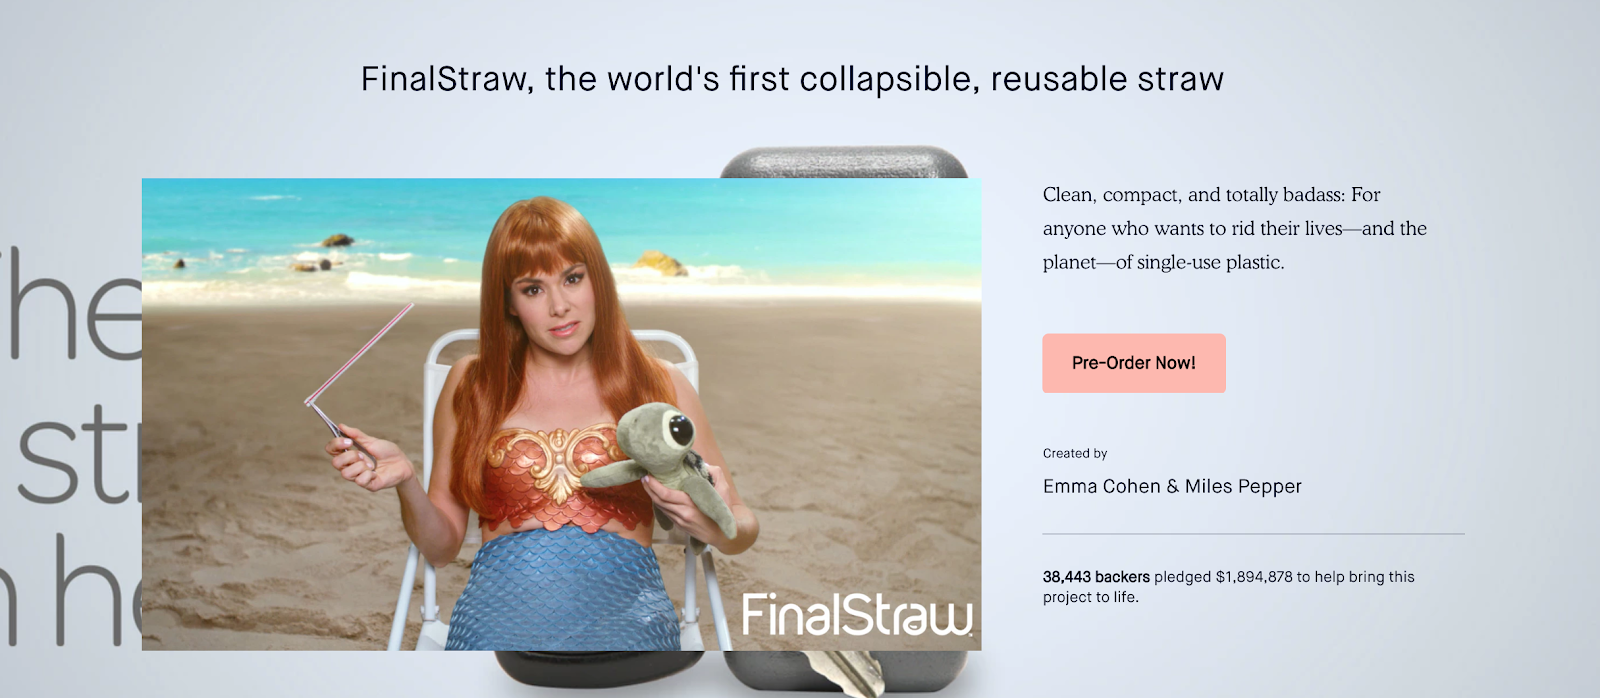 how-i-invented-a-collapsible-metal-straw-and-raised-1-89m-on-kickstarter